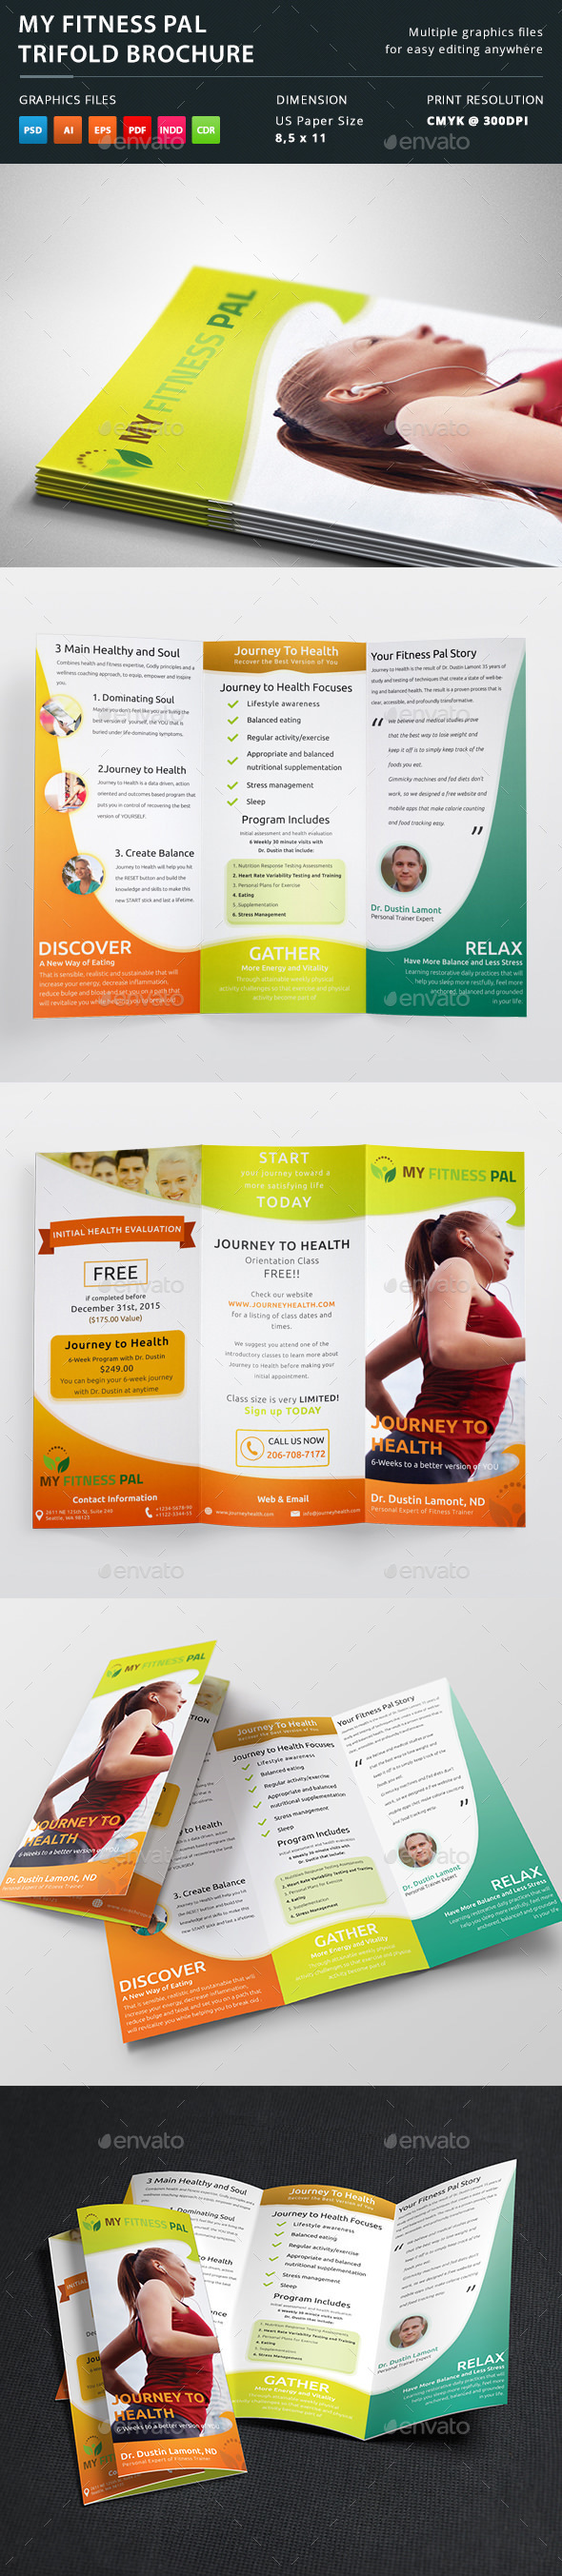 My Fitness Pal Trifold Brochure - Brochures Print Templates